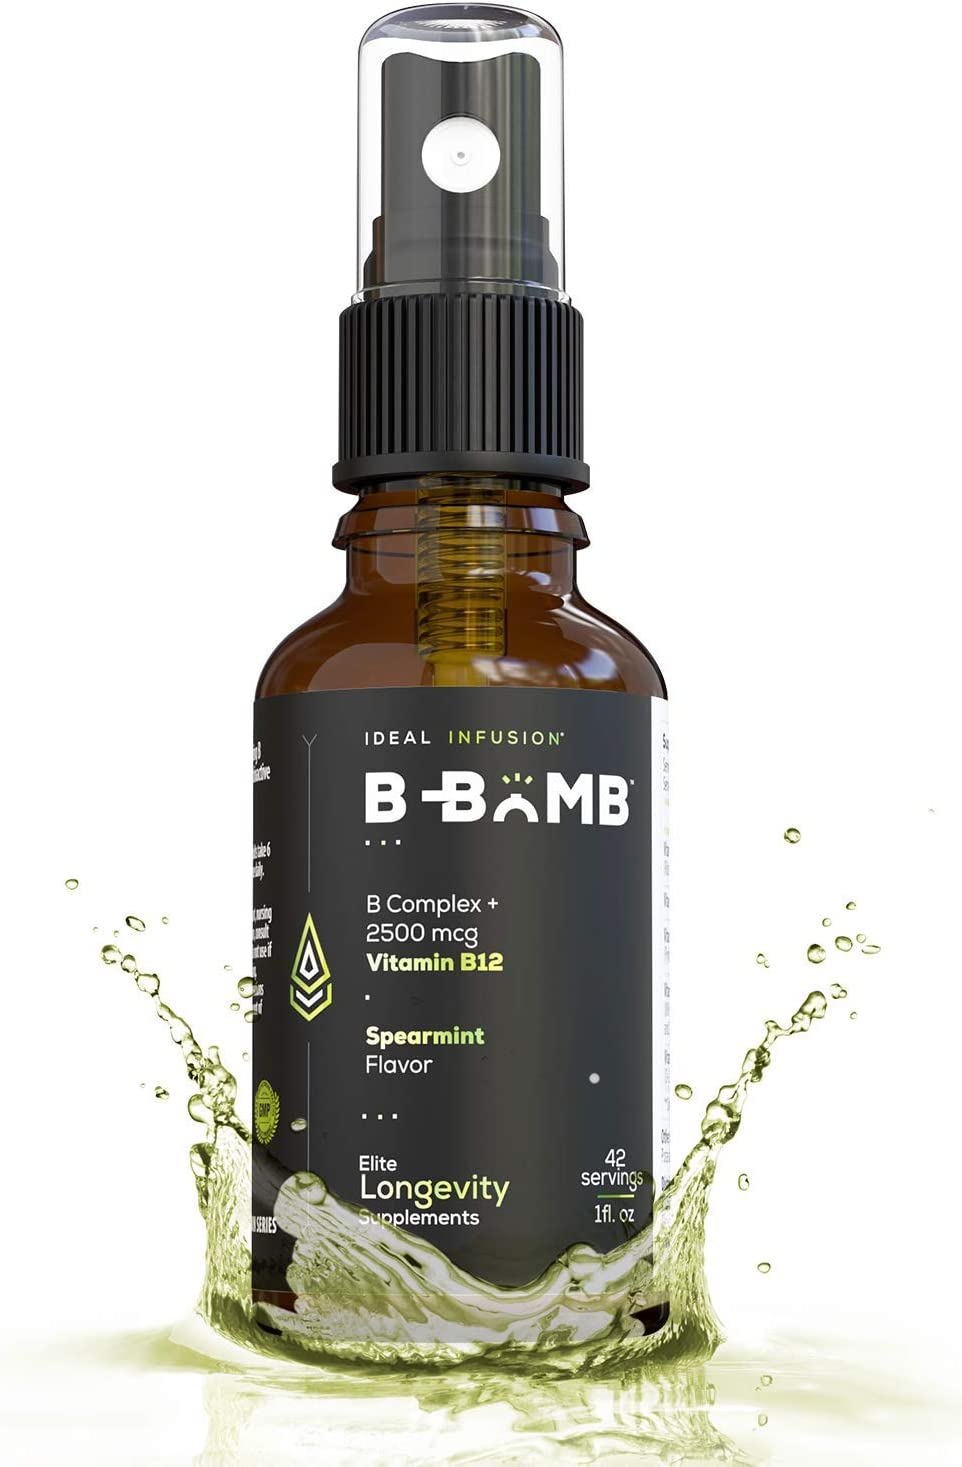 Bioactive Vitamin B12 Liquid Spray l Adenosylcobalamin and Methylcobalamin l Organic Spearmint and Stevia l 2500 mcg, Vegan l Vitamin B2, B3, B5, B6